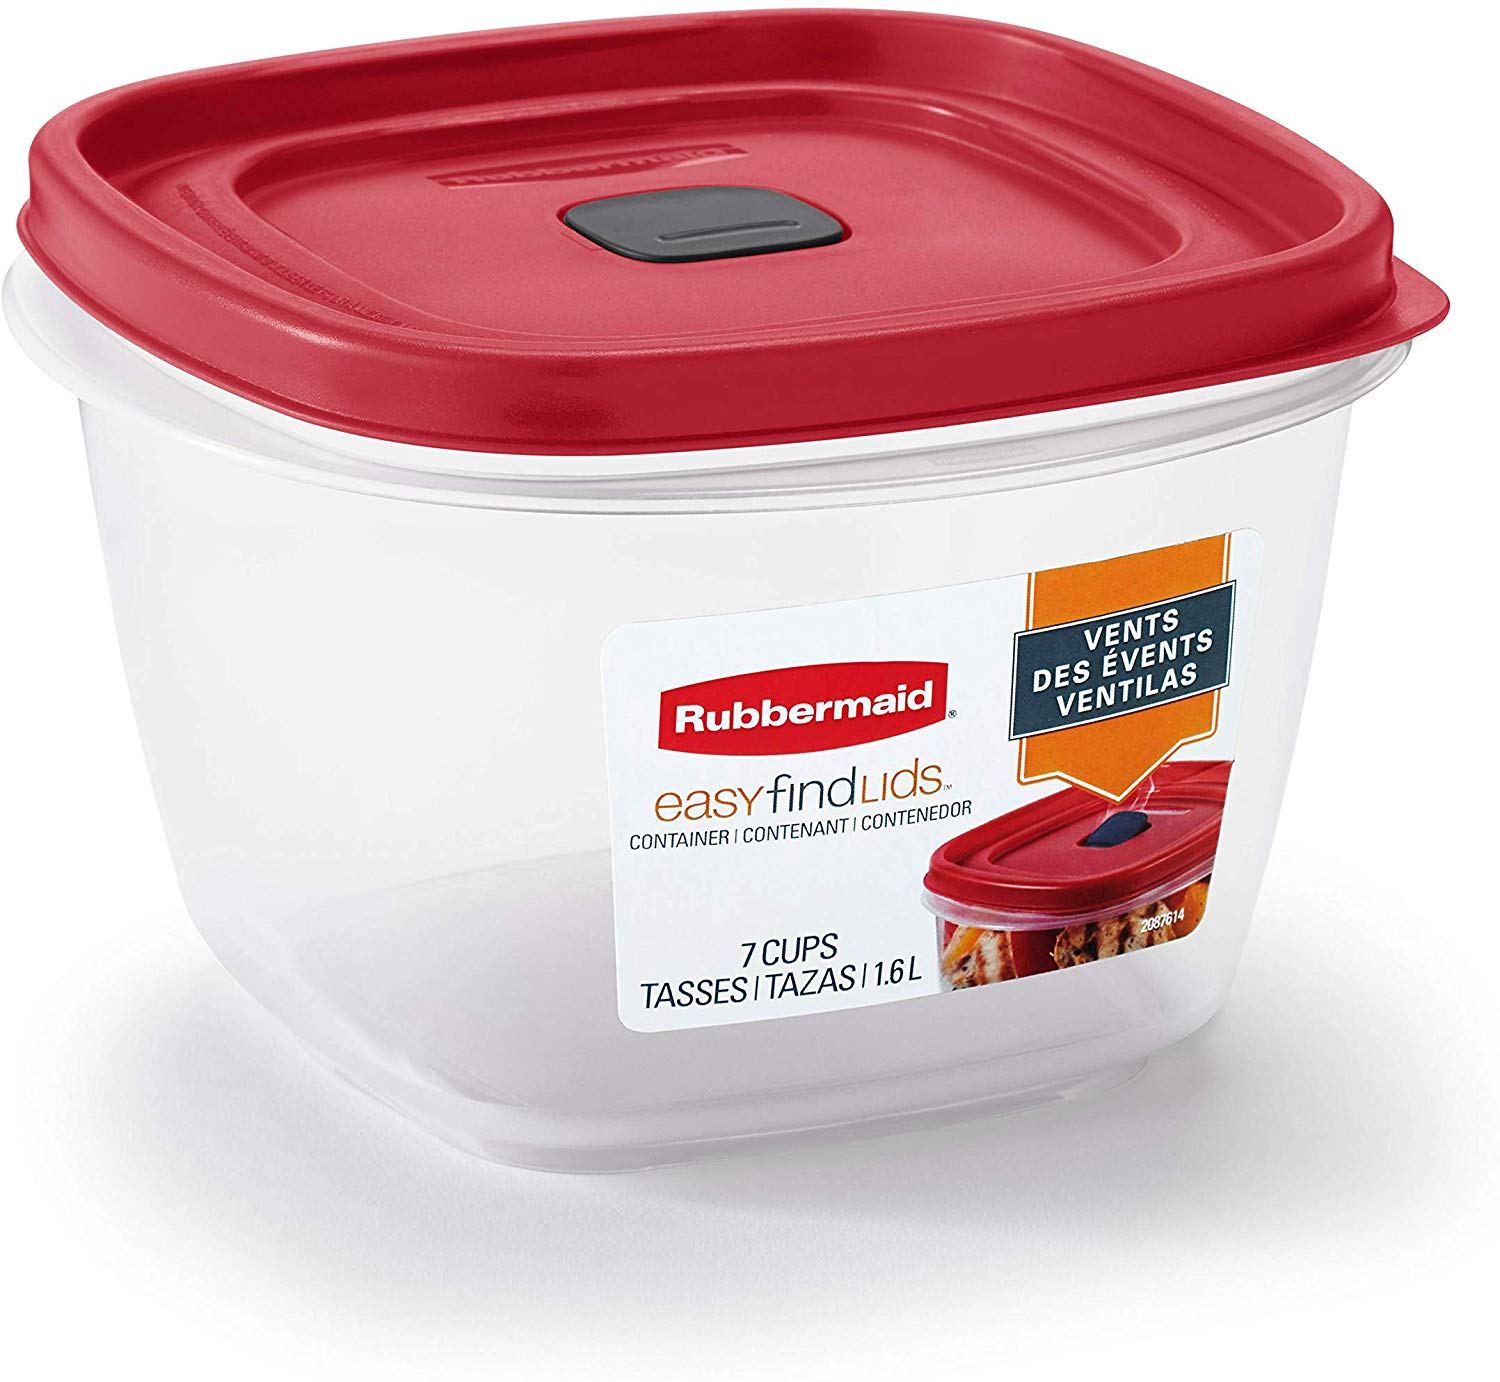 Rubbermaid Easy Find Vented Lid Food Storage Containers only $3! (was $6.99)